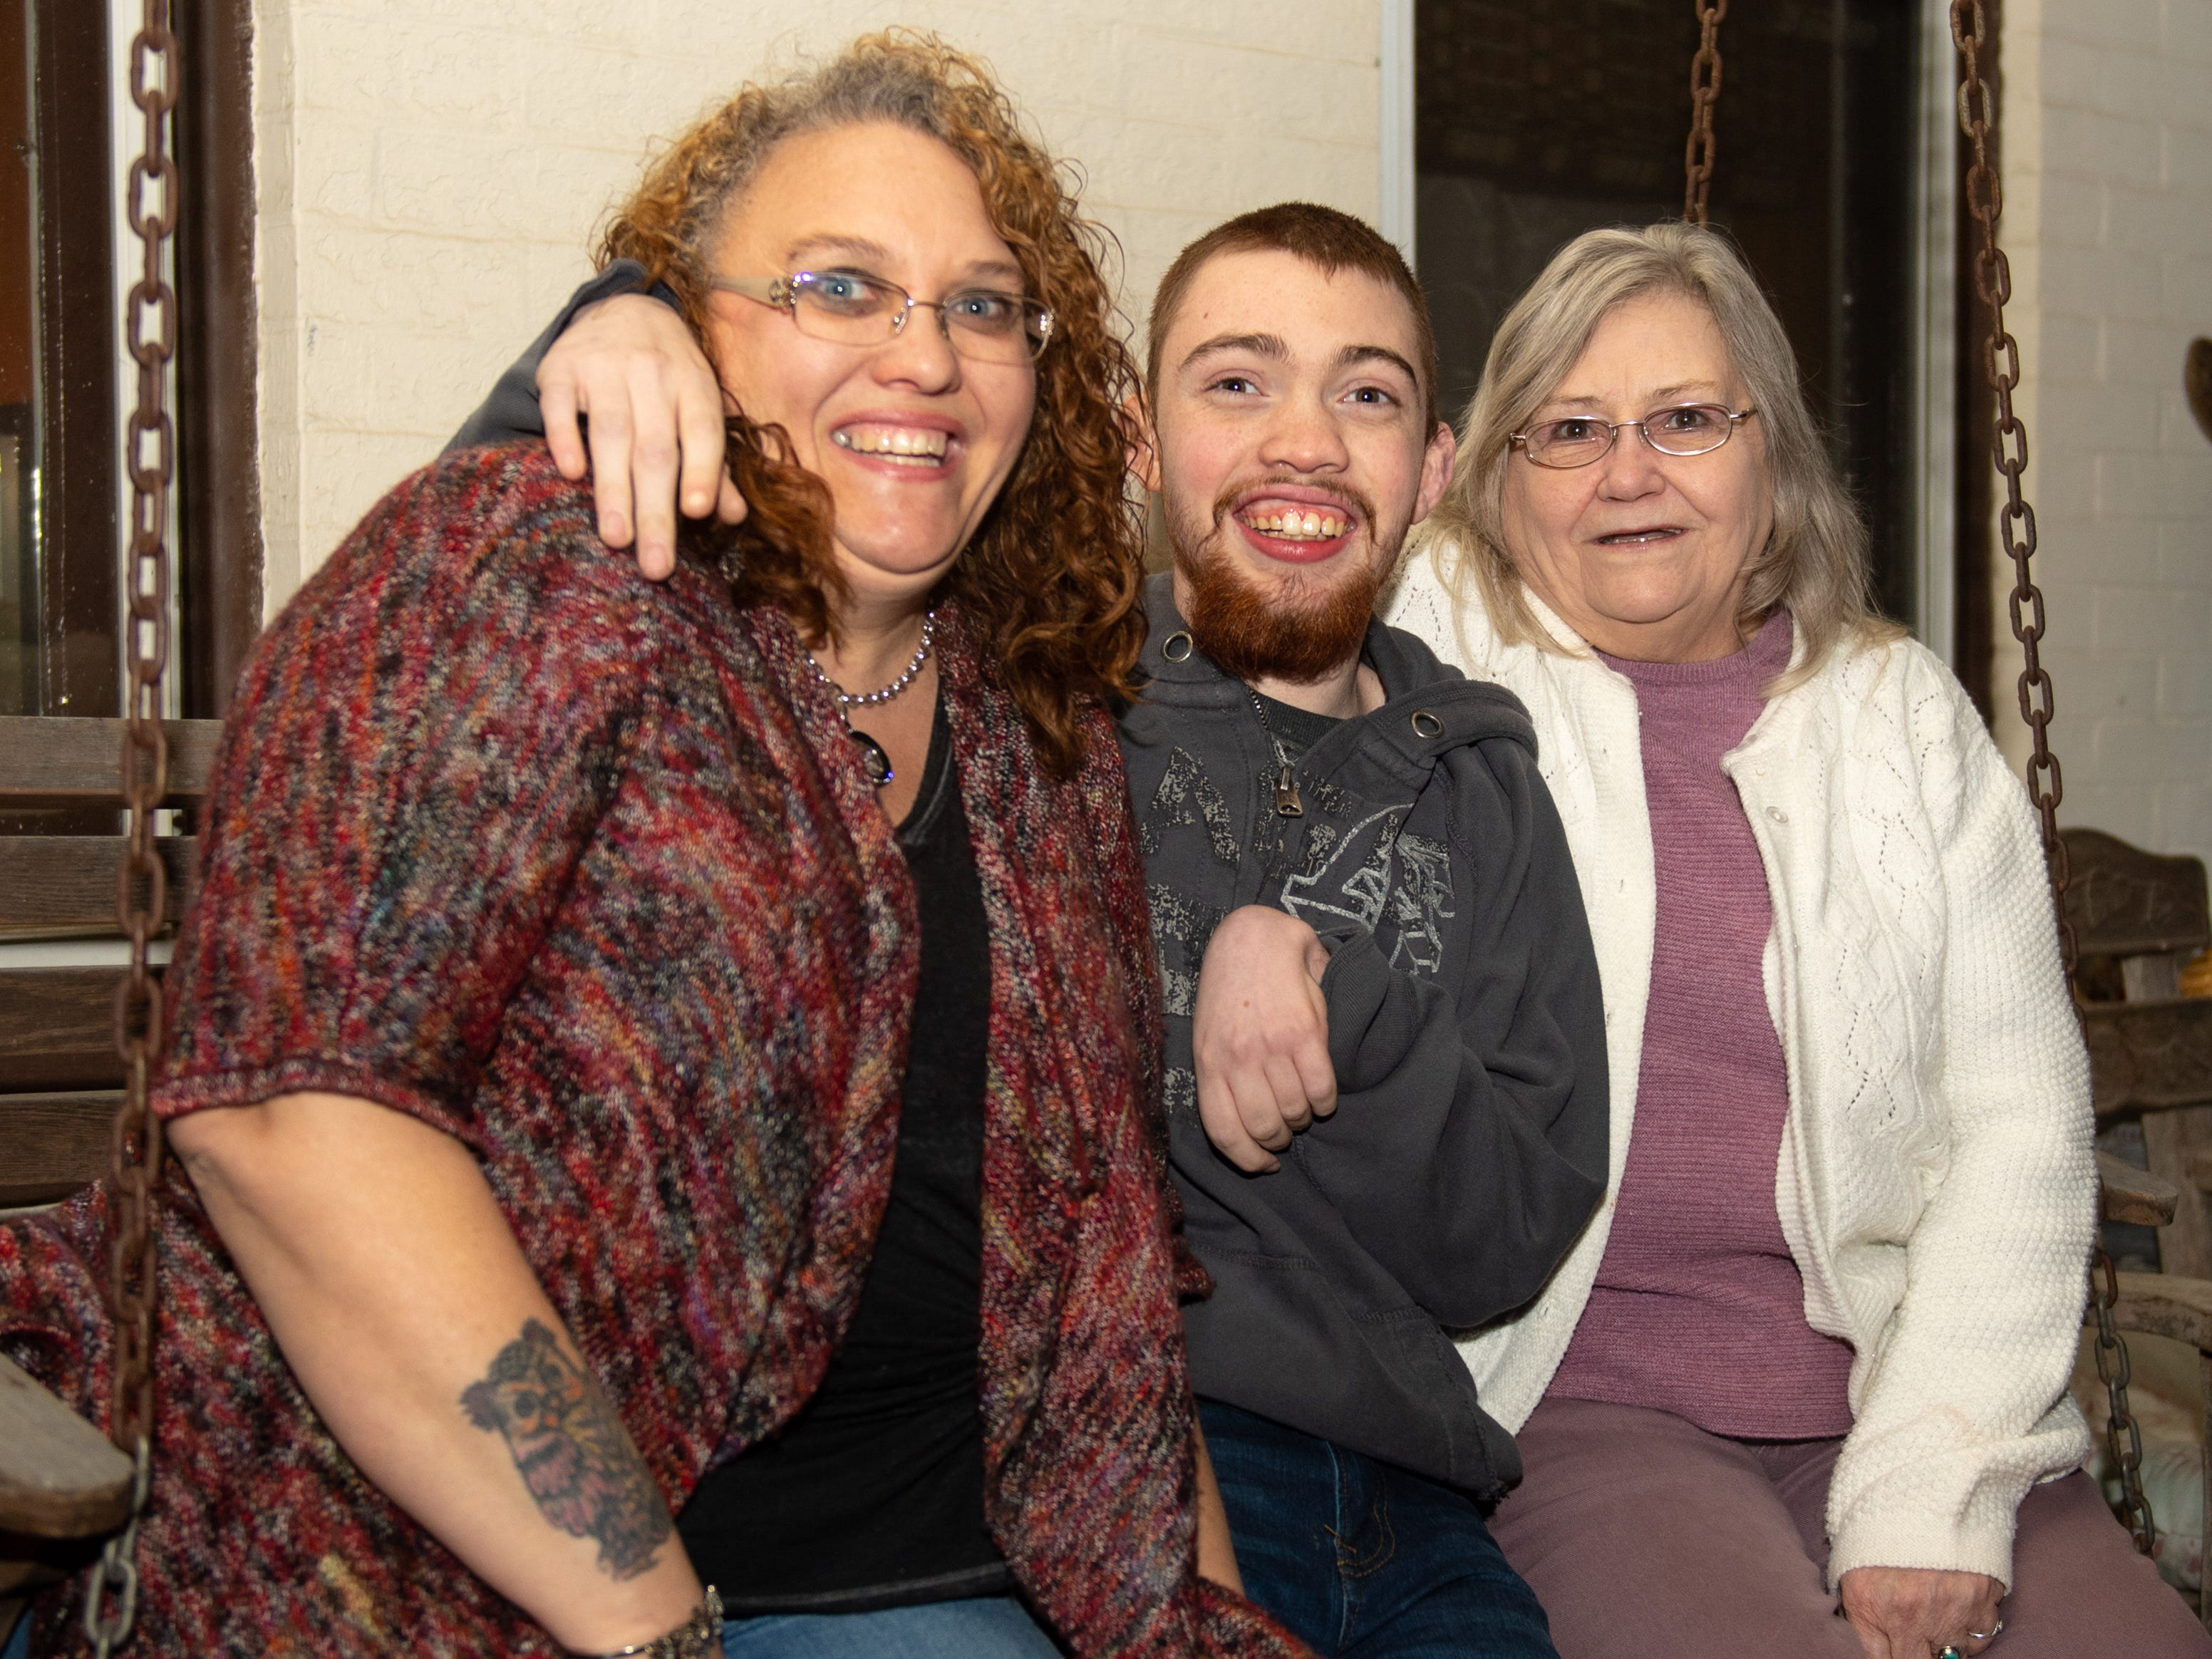 Hunter Leisenring (middle) is joined on his front porch by his mother, Yvette Wertz (left) and his grandmother, Sonya Cottle (right), January 8, 2019.